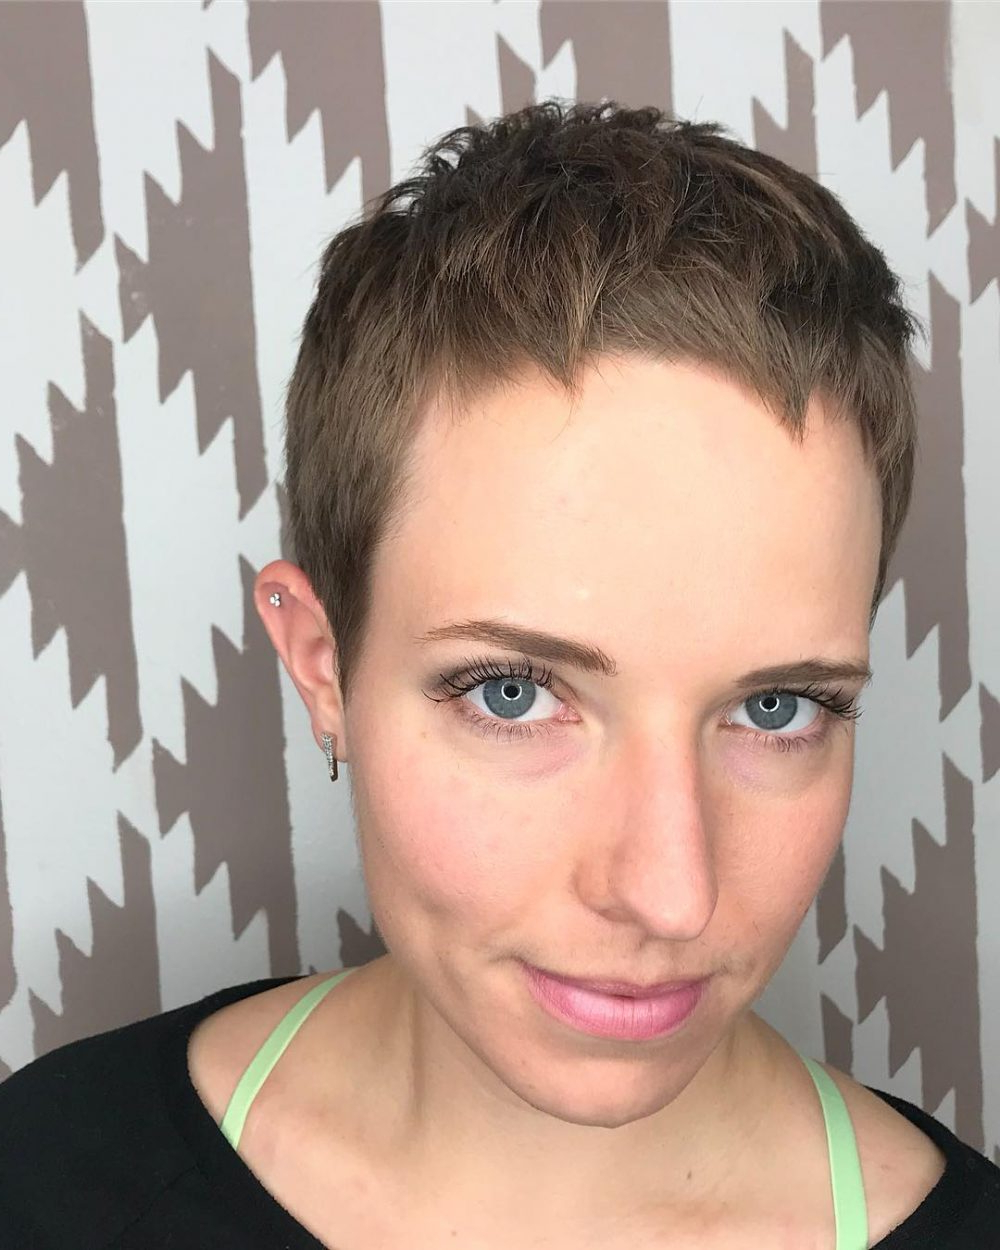 27 Very Short Haircuts You Have To See In 2018 Within Short Female Hair Cuts (View 18 of 25)